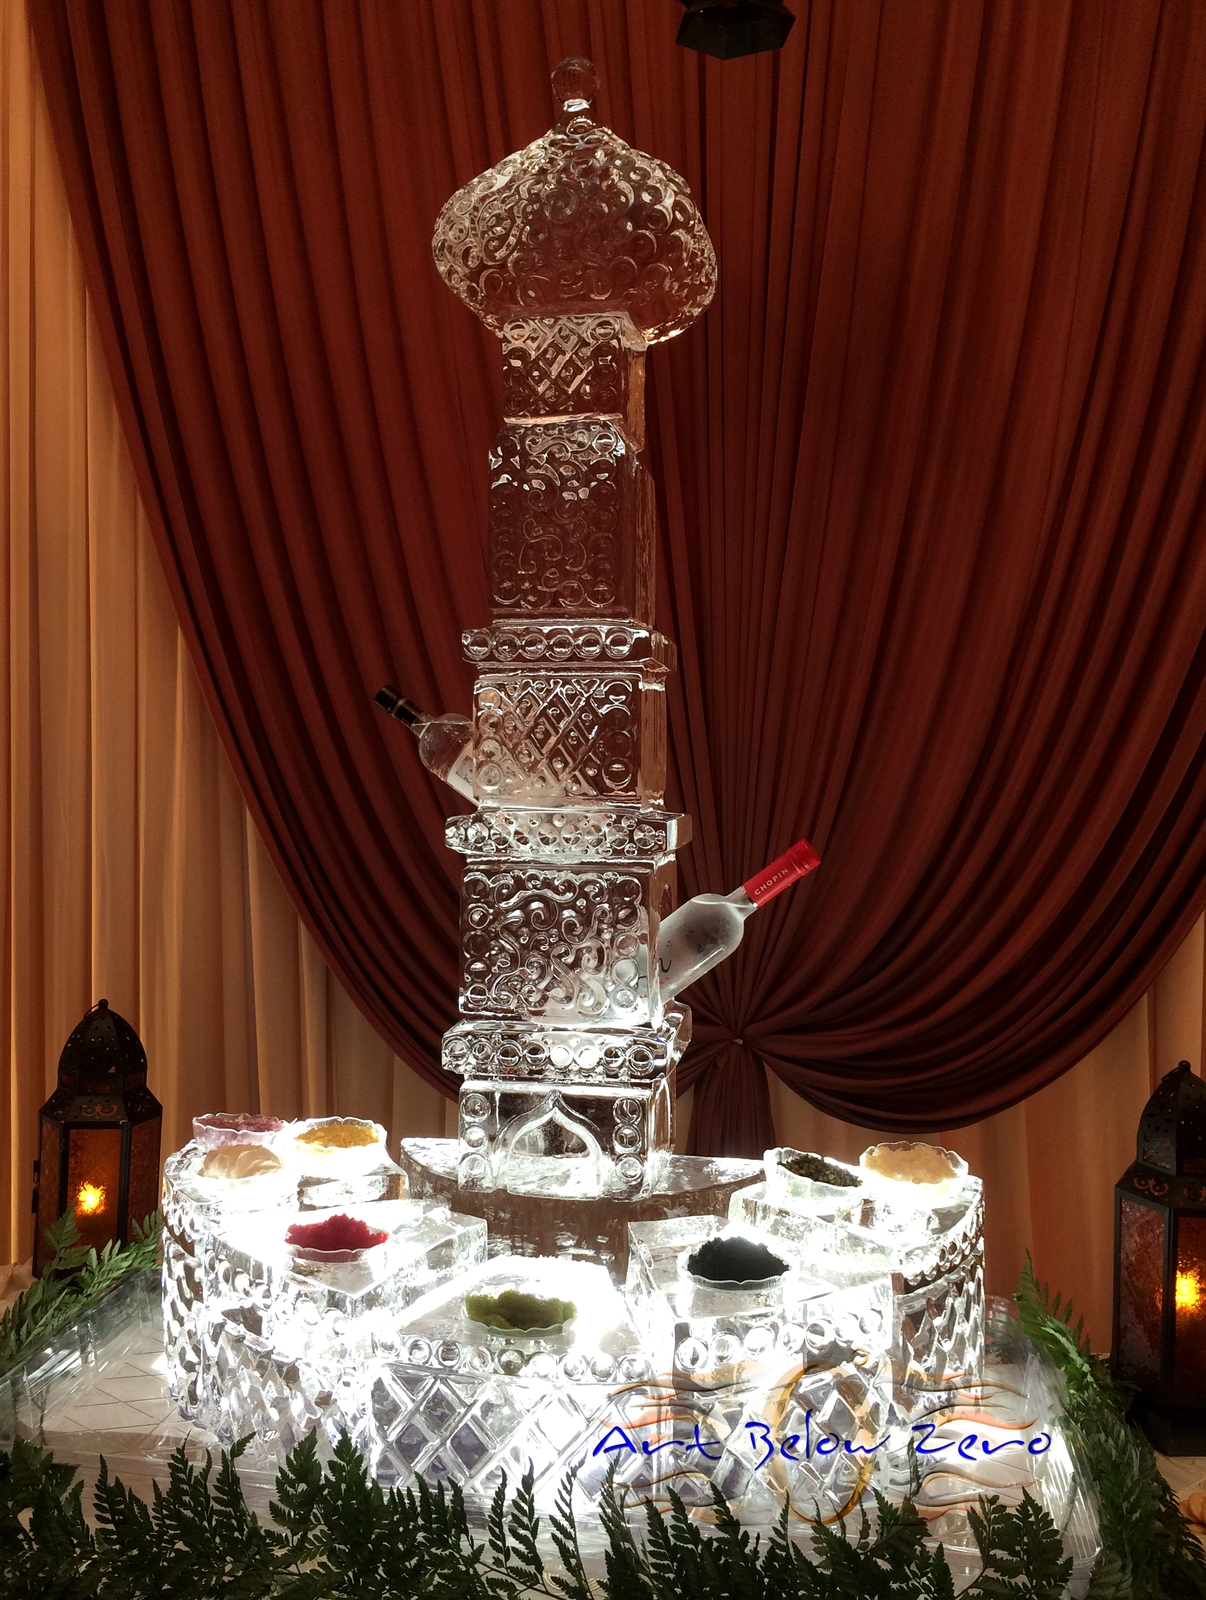 Arabian_nights_theme__caviar_station_ice_sculpture